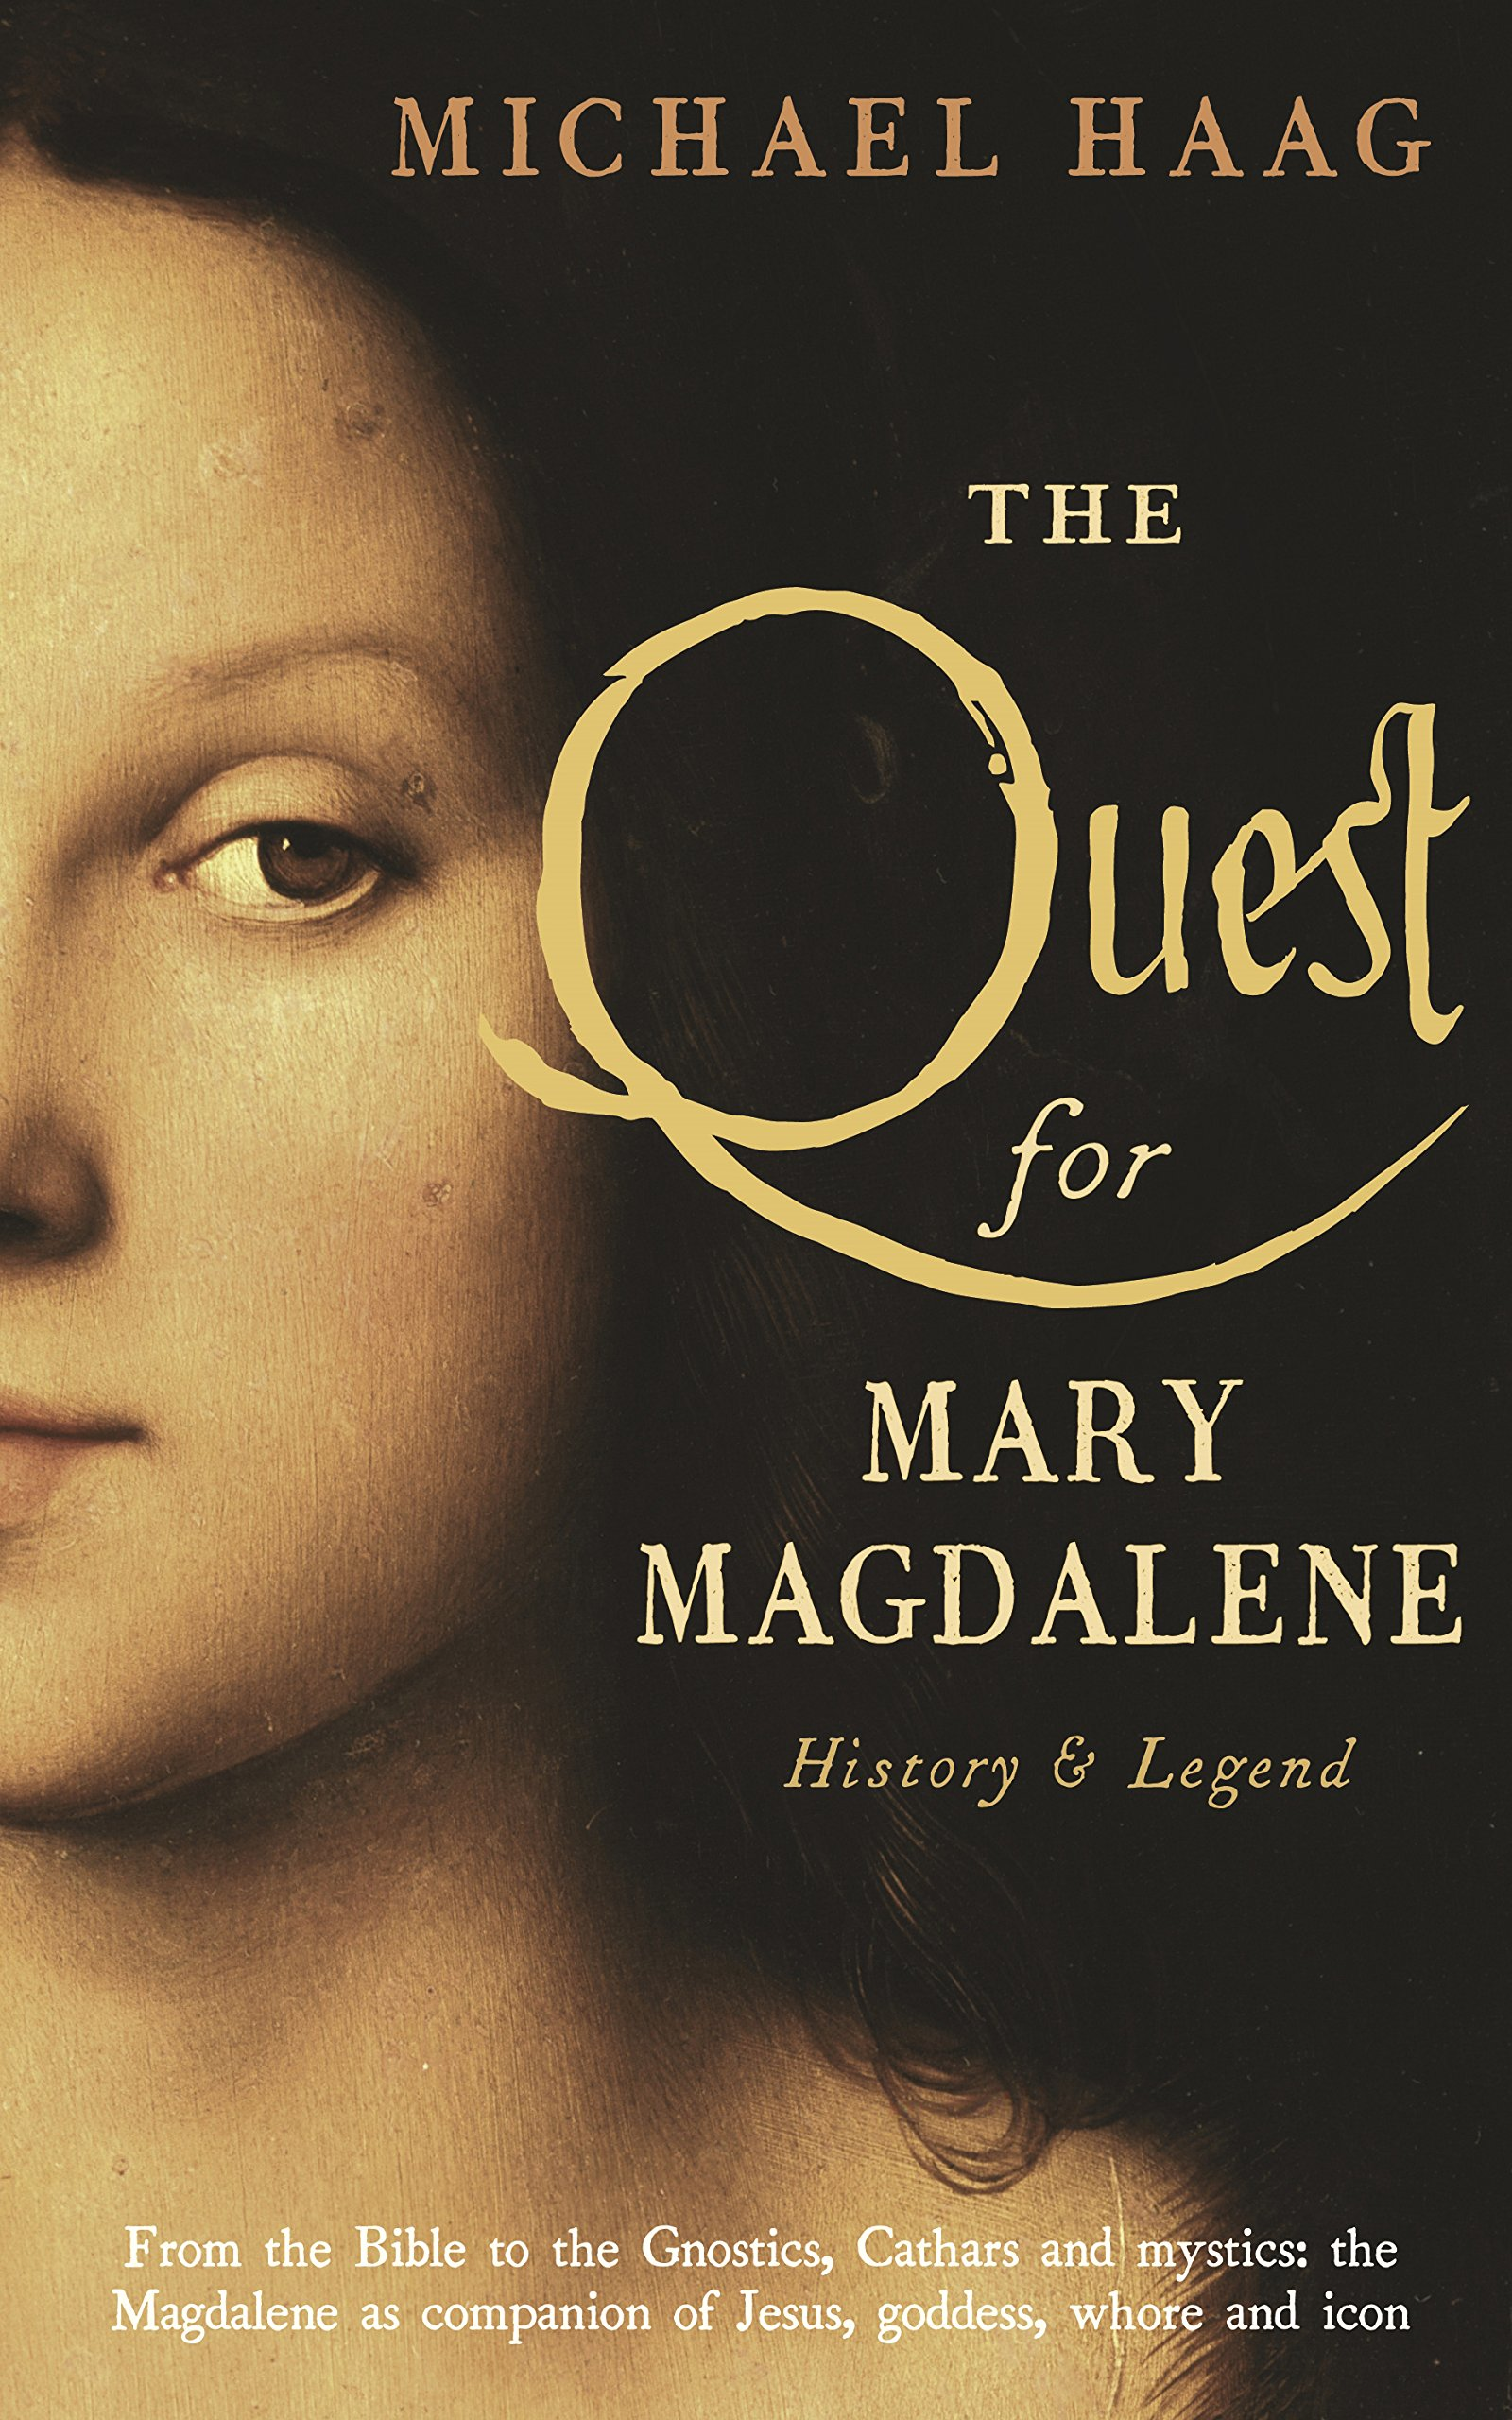 The Quest For Mary Magdalene: History & Legend: Amazon.co.uk: Michael Haag:  9781846684524: Books